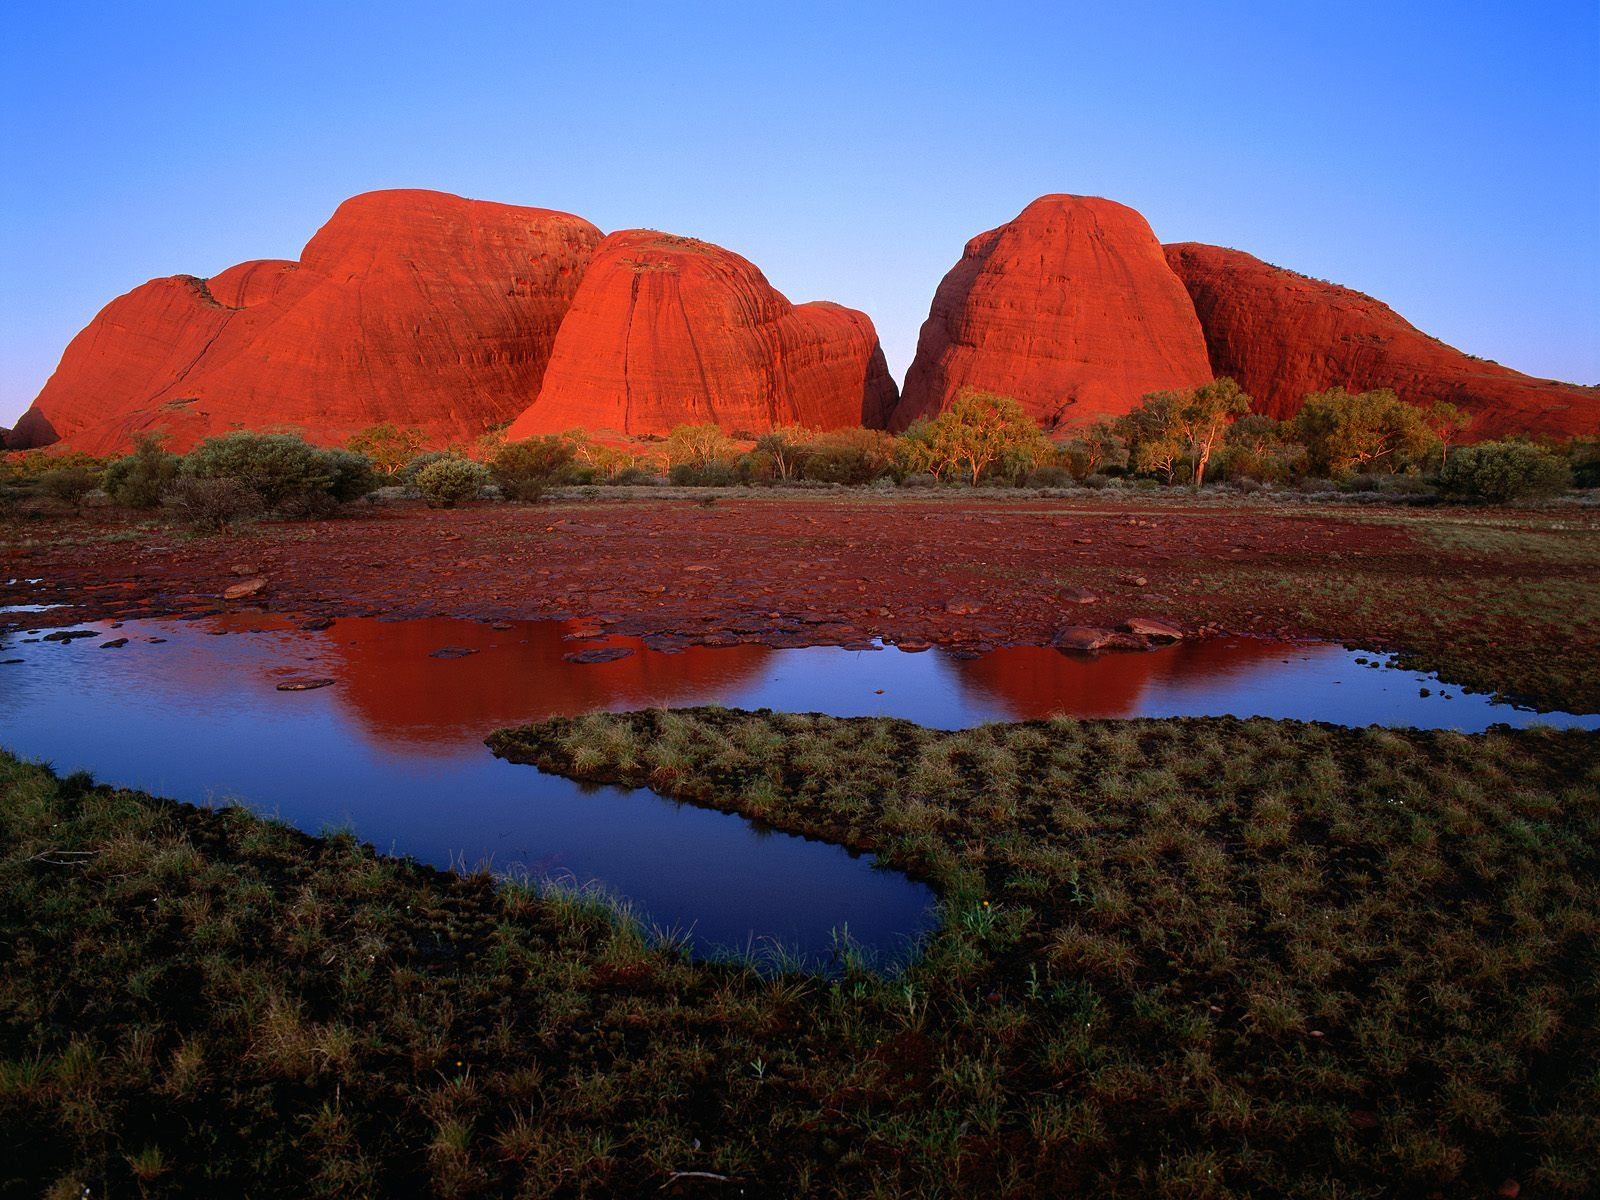 australia | Uluru-Kata Tjuta National Park - Australia Wallpaper (23340550  ... | Australia travel, Wonders of the world, Australia wallpaper